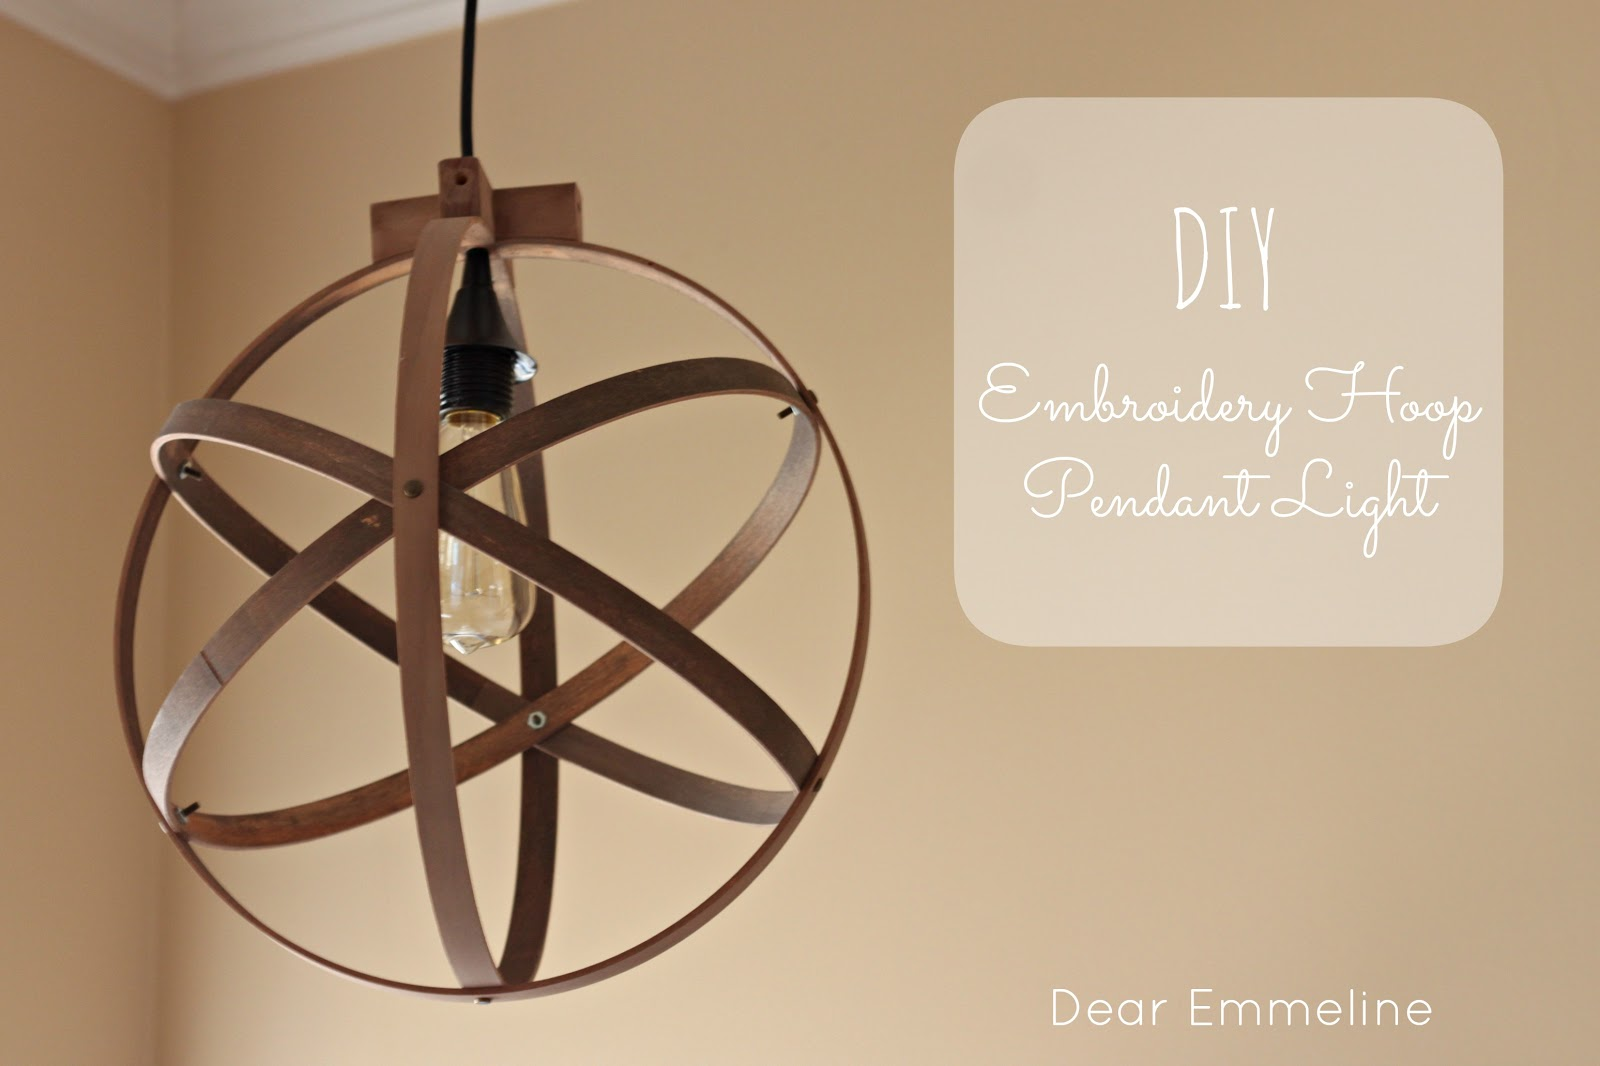 Diy easy embroidery hoop pendant it took us about 30 minutes of actual work time to make this fixture aloadofball Images